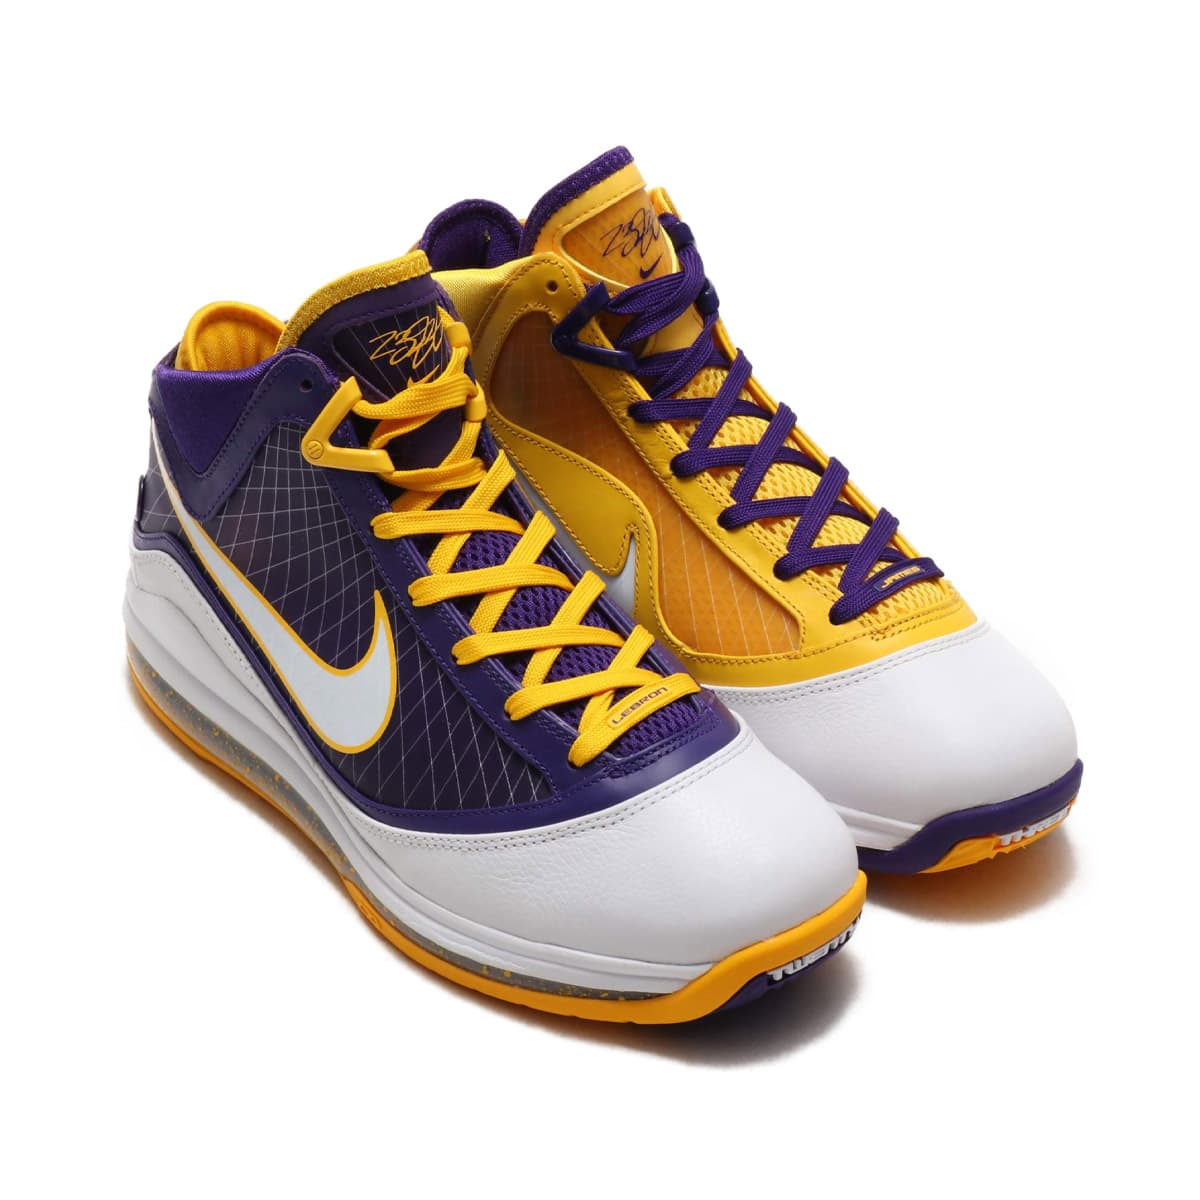 NIKE LEBRON VII QS COURT PURPLE/WHITE-AMARILLO 20SU-S_photo_large